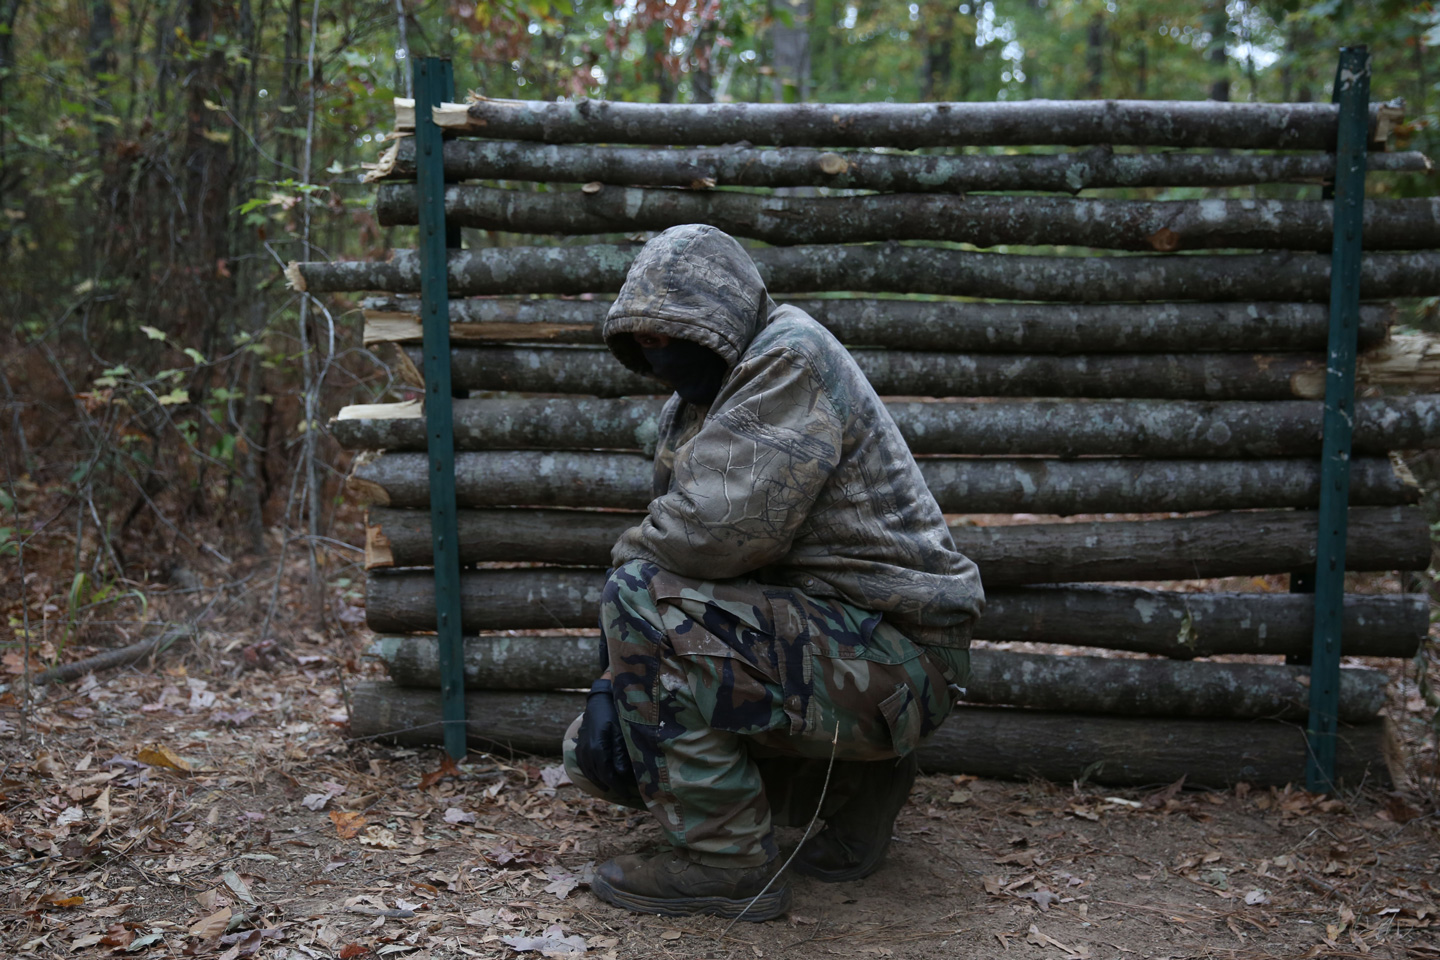 """FLOVILLA, UNITED STATES - NOVEMBER 12: A member of the Georgia Security Forces (GSF) is seen during military drill with group members of III% Georgia Security Force in Flovilla, Georgia, USA on November 12, 2016. The militia calls itself the Georgia Security Forces (GSF), they are white supremacists on the look for foreign threats either it's the Russians or ISIS as they claim. The group is a part of a wider unlinked phenomena called """"The Three Percenters (III%)"""" who are scattered across the US and claim to be the only noble Americans who've fought against the British during the revolution. (Photo by Mohammed Elshamy/Anadolu Agency/Getty Images)"""